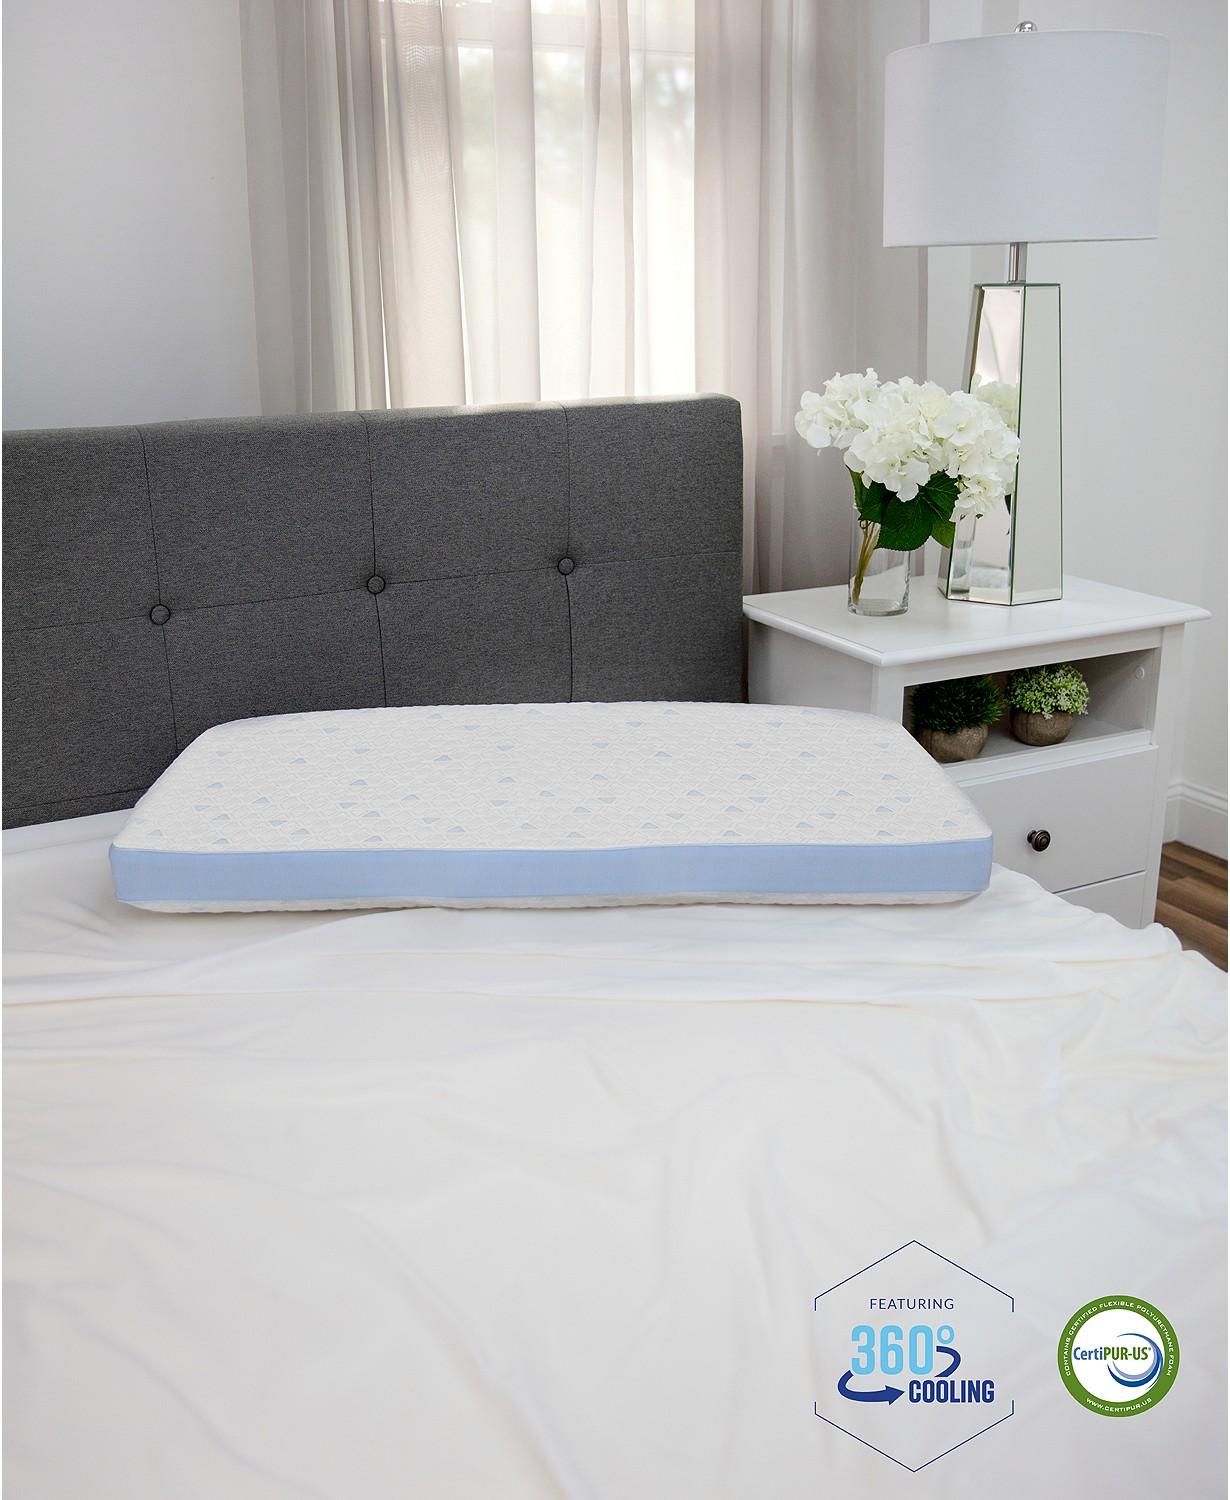 sensorgel cold touch gusseted hypoallergenic memory foam with built in icool system pillow white